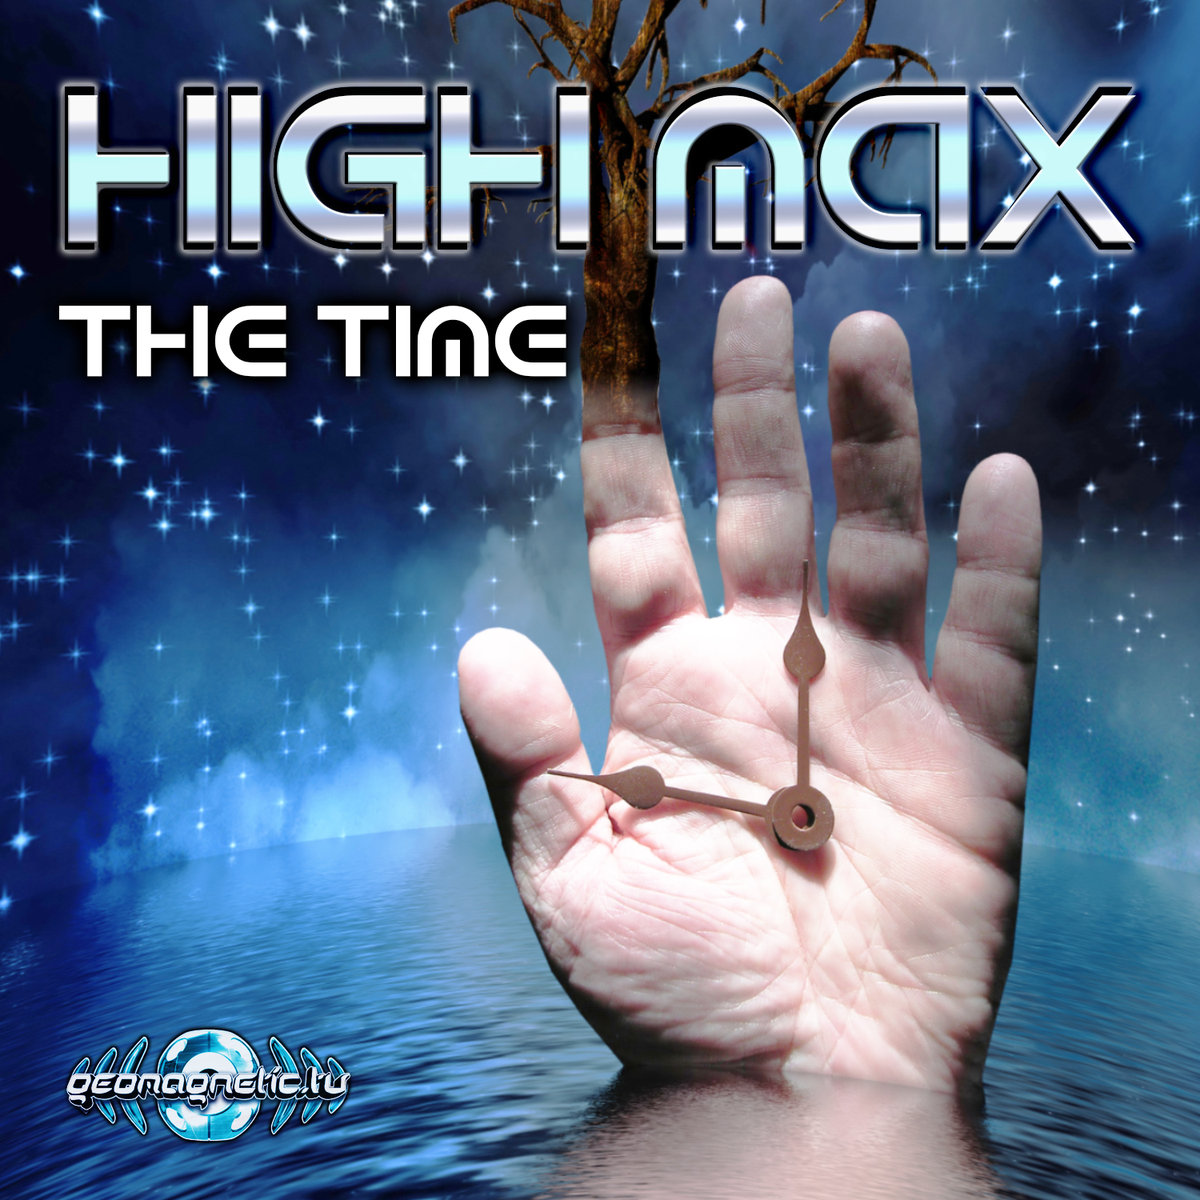 High Max - The Time